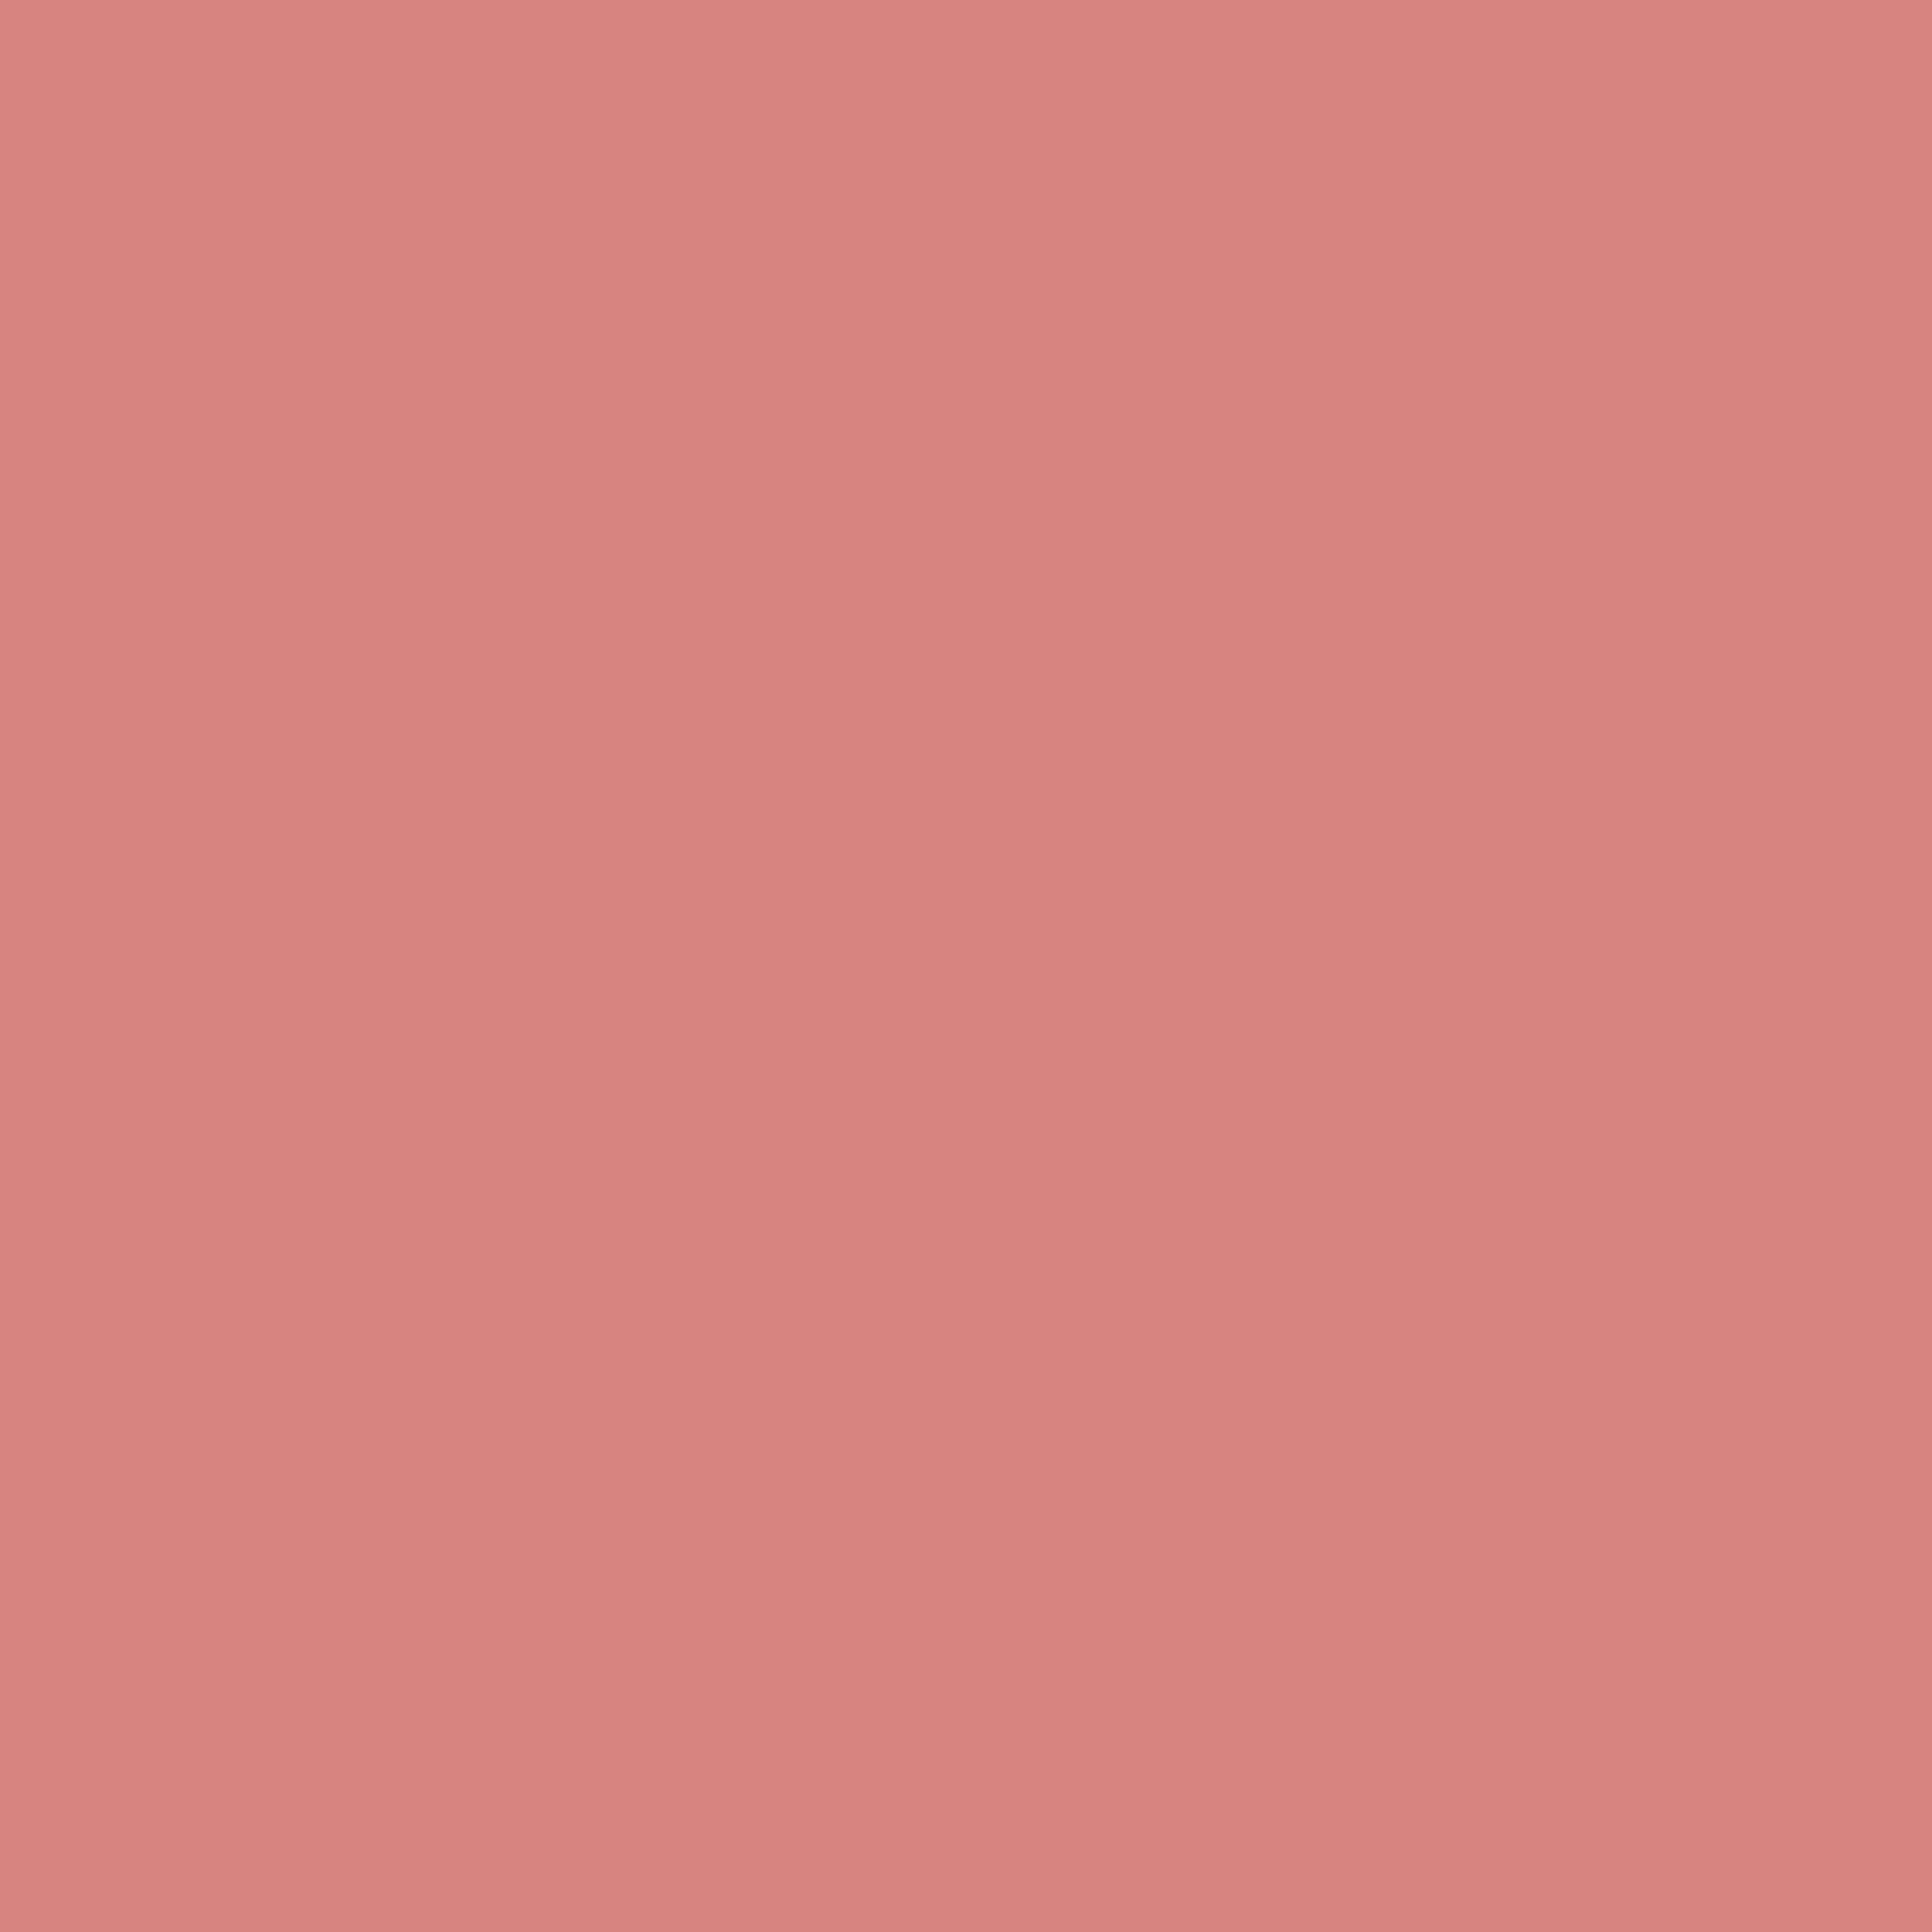 2732x2732 New York Pink Solid Color Background